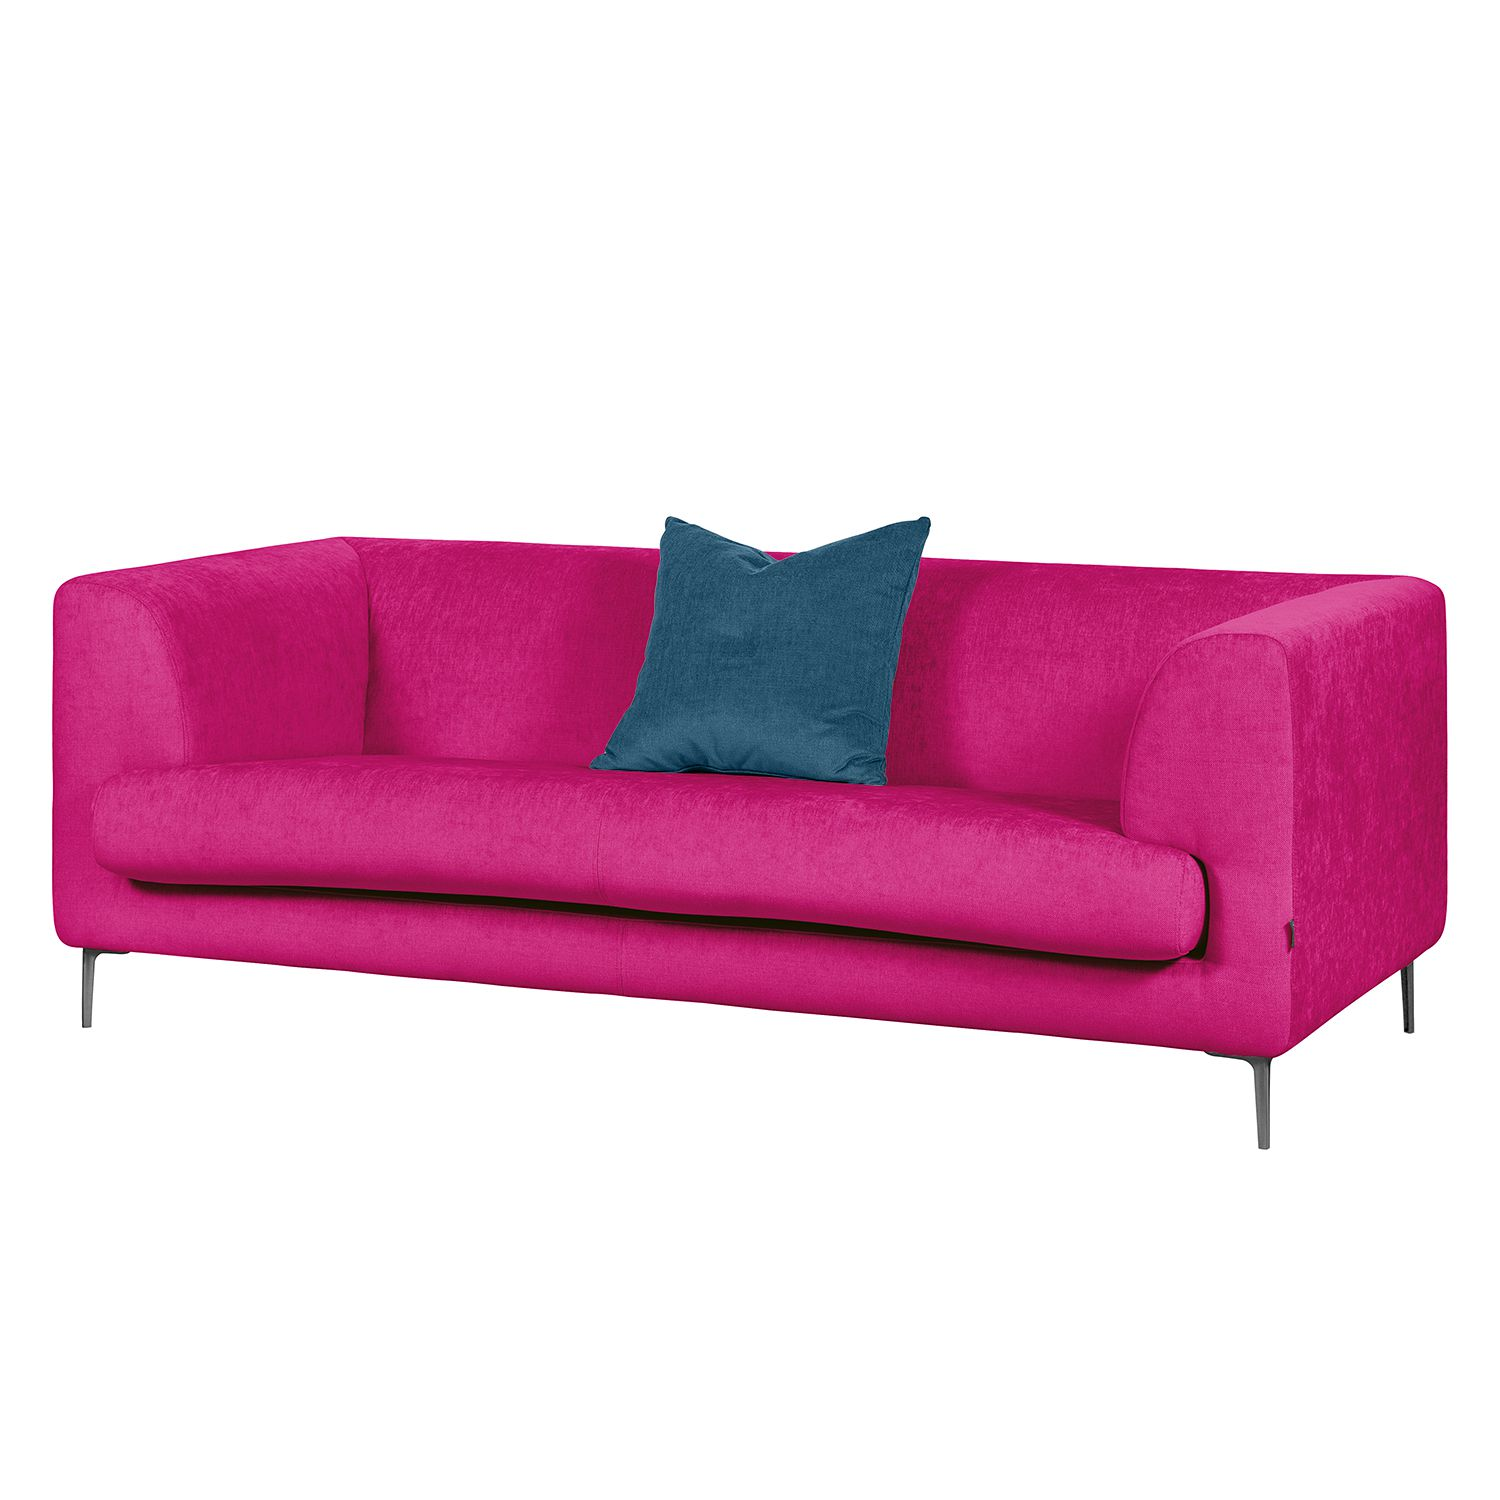 Sofa Sombret (2,5-Sitzer) - Webstoff - Pink, Says Who